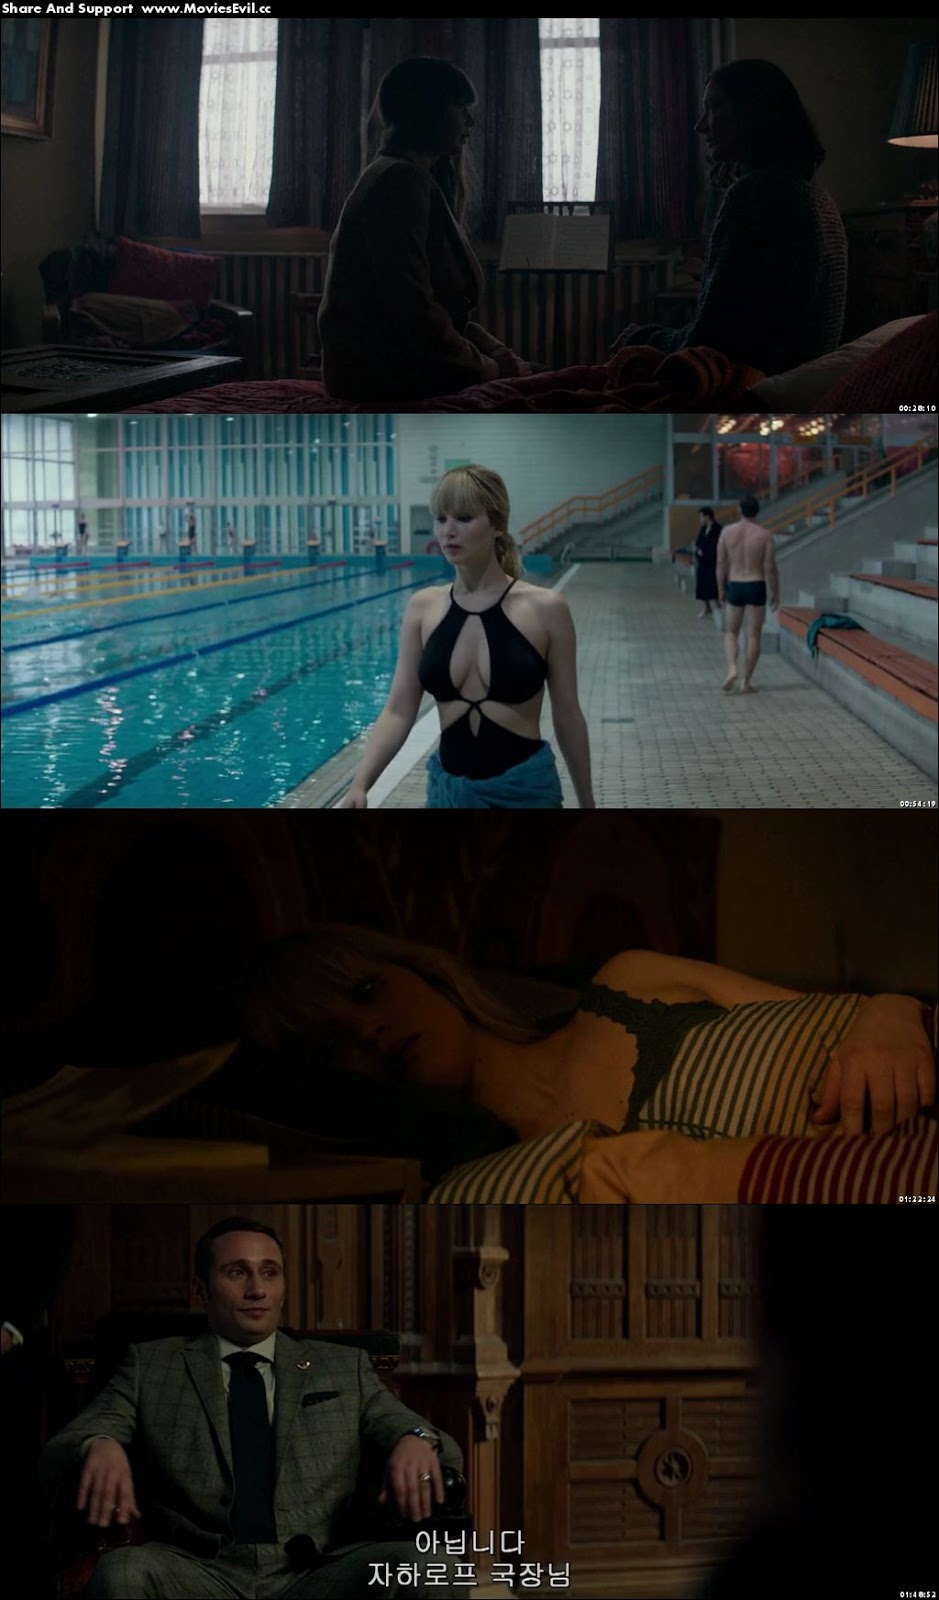 Red Sparrow 2018 English 720p HDRip x264 Free Download,Red Sparrow 2018full movie download,Red Sparrow 2018 direct link download,Red Sparrow 2018 300 mb download,Red Sparrow 2018dual audio download,Red Sparrow 2018 direct link download,Red Sparrow 2018 hindi dubbed download